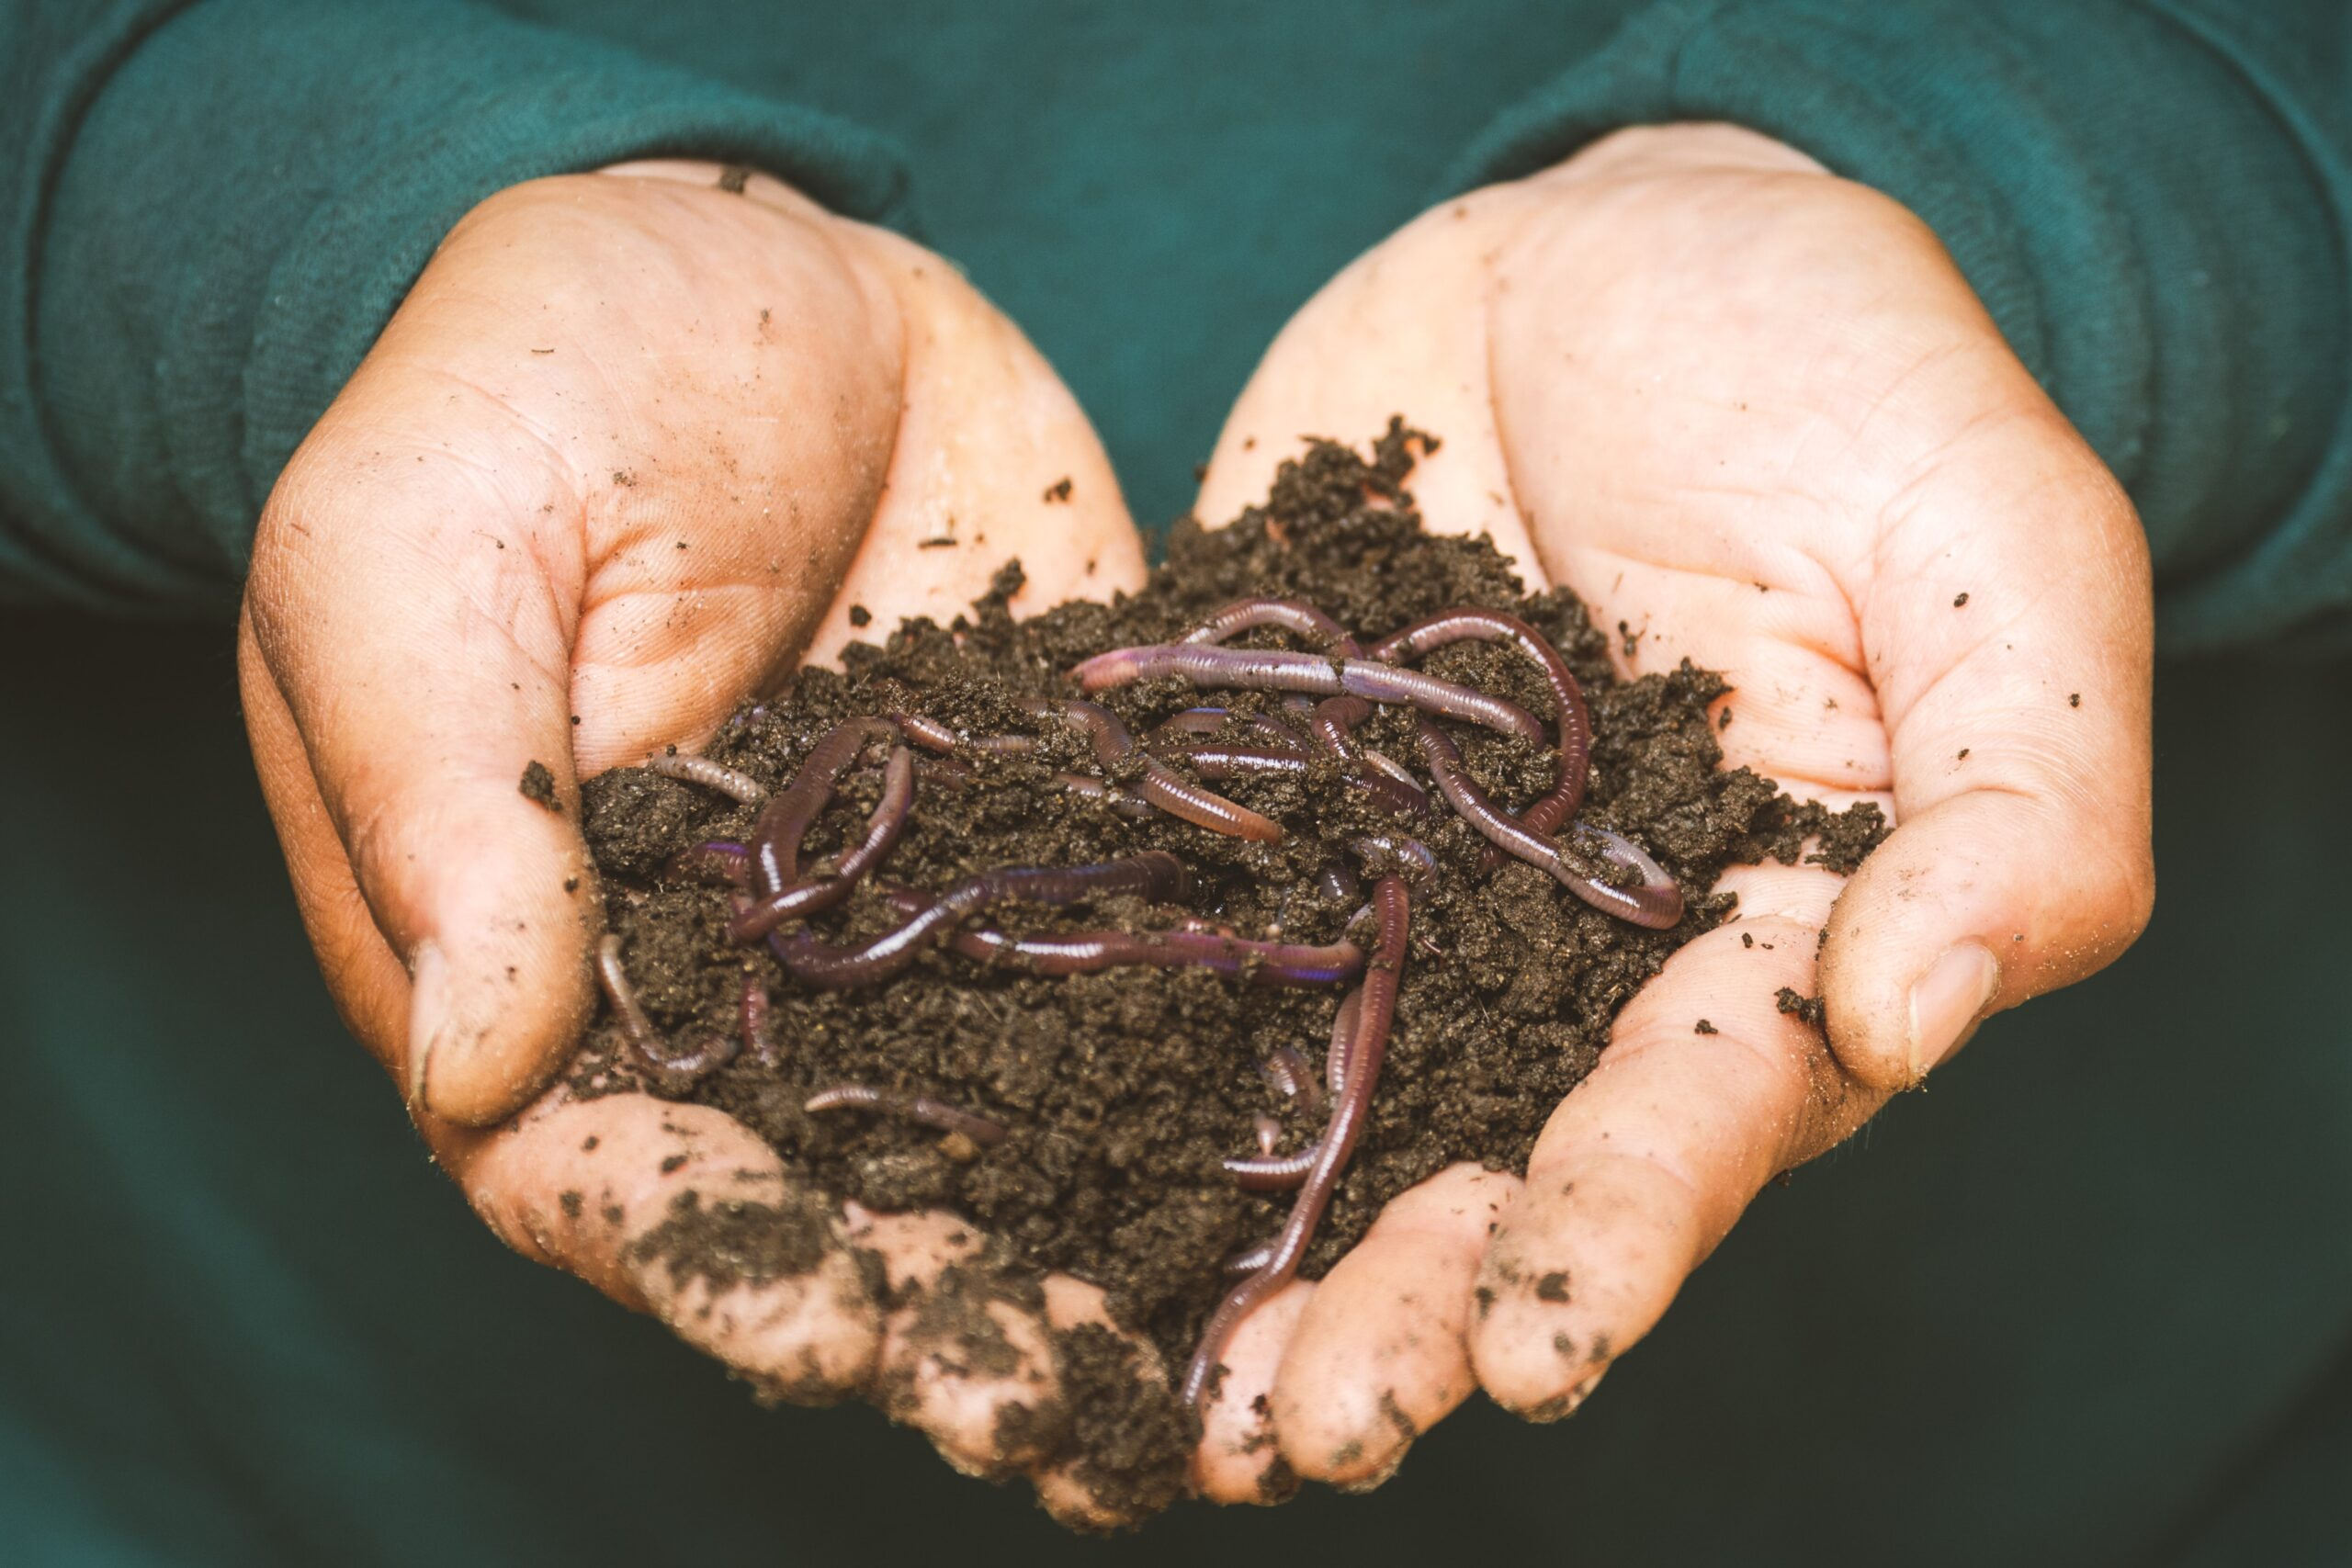 ow to Catch Worms for Fishing Bait